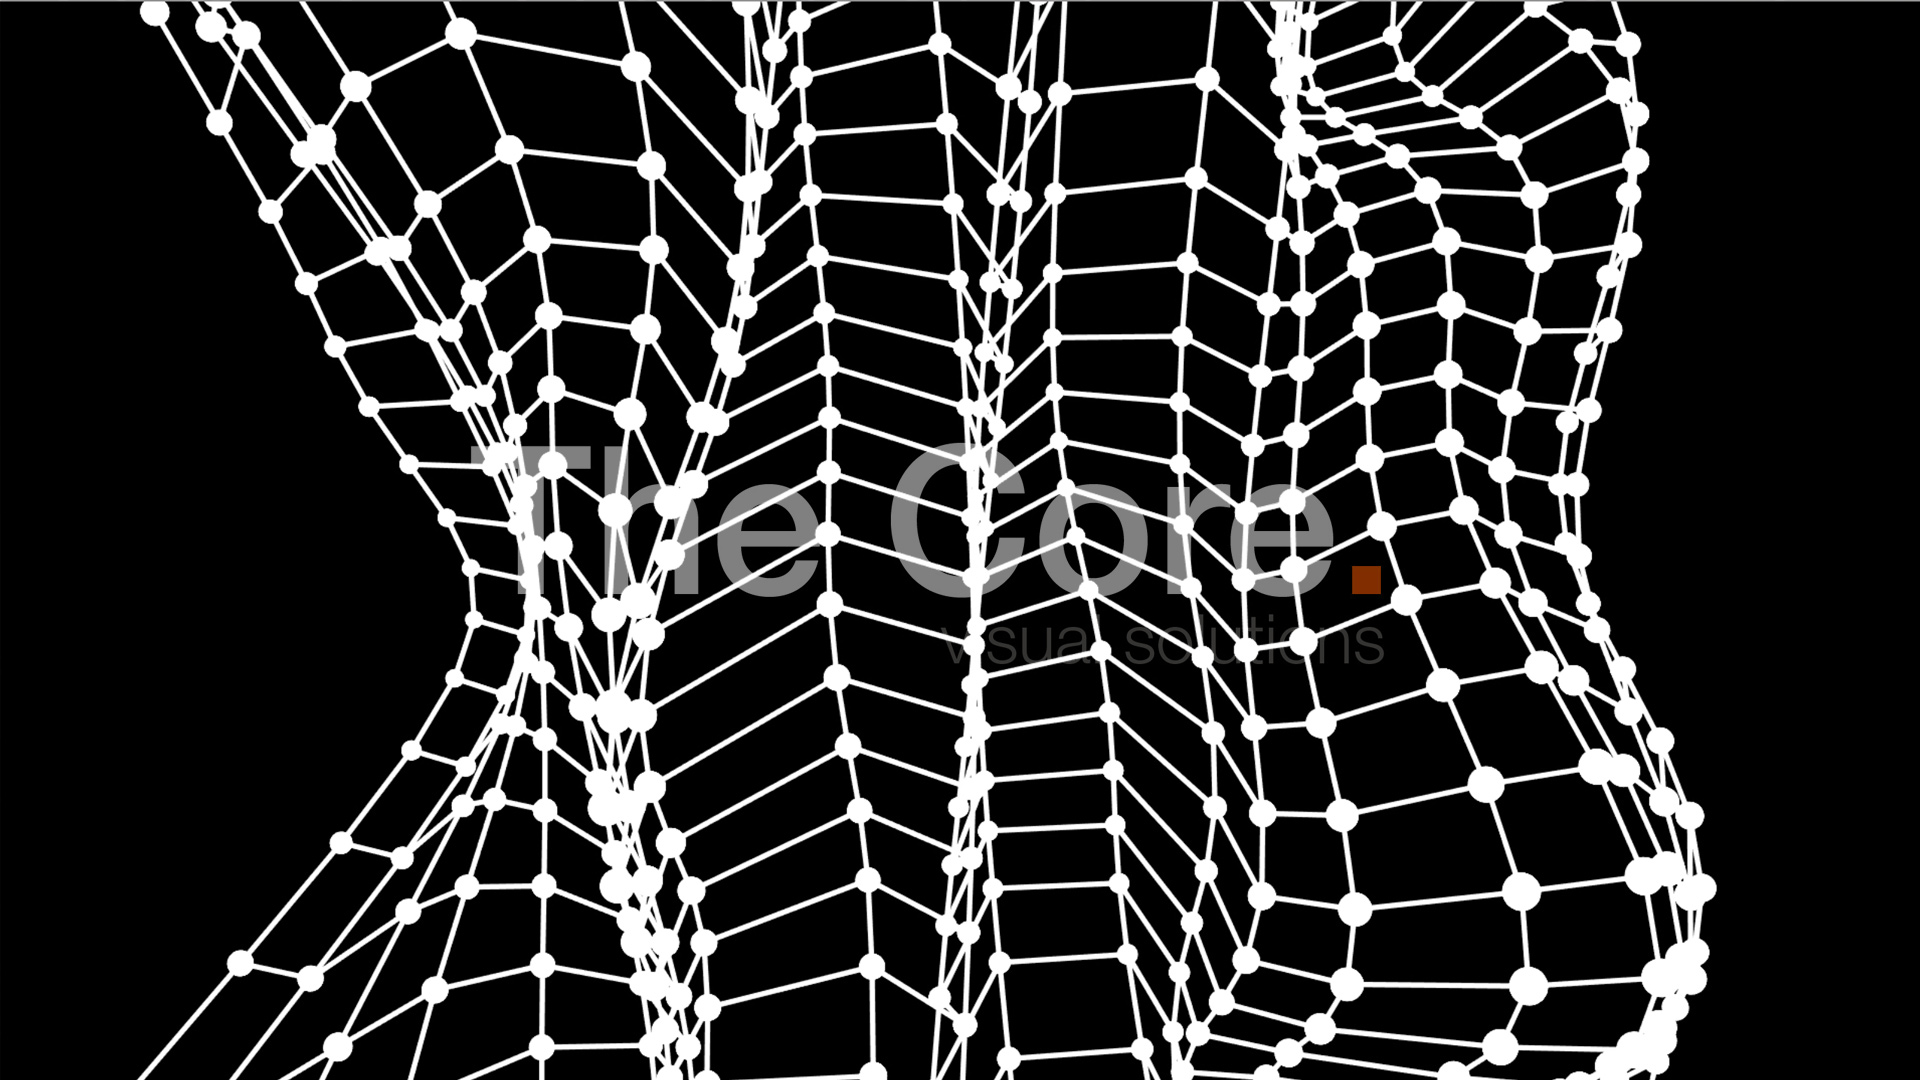 00070-WIRE-GRID-ZOOM-OUT-1-STILL